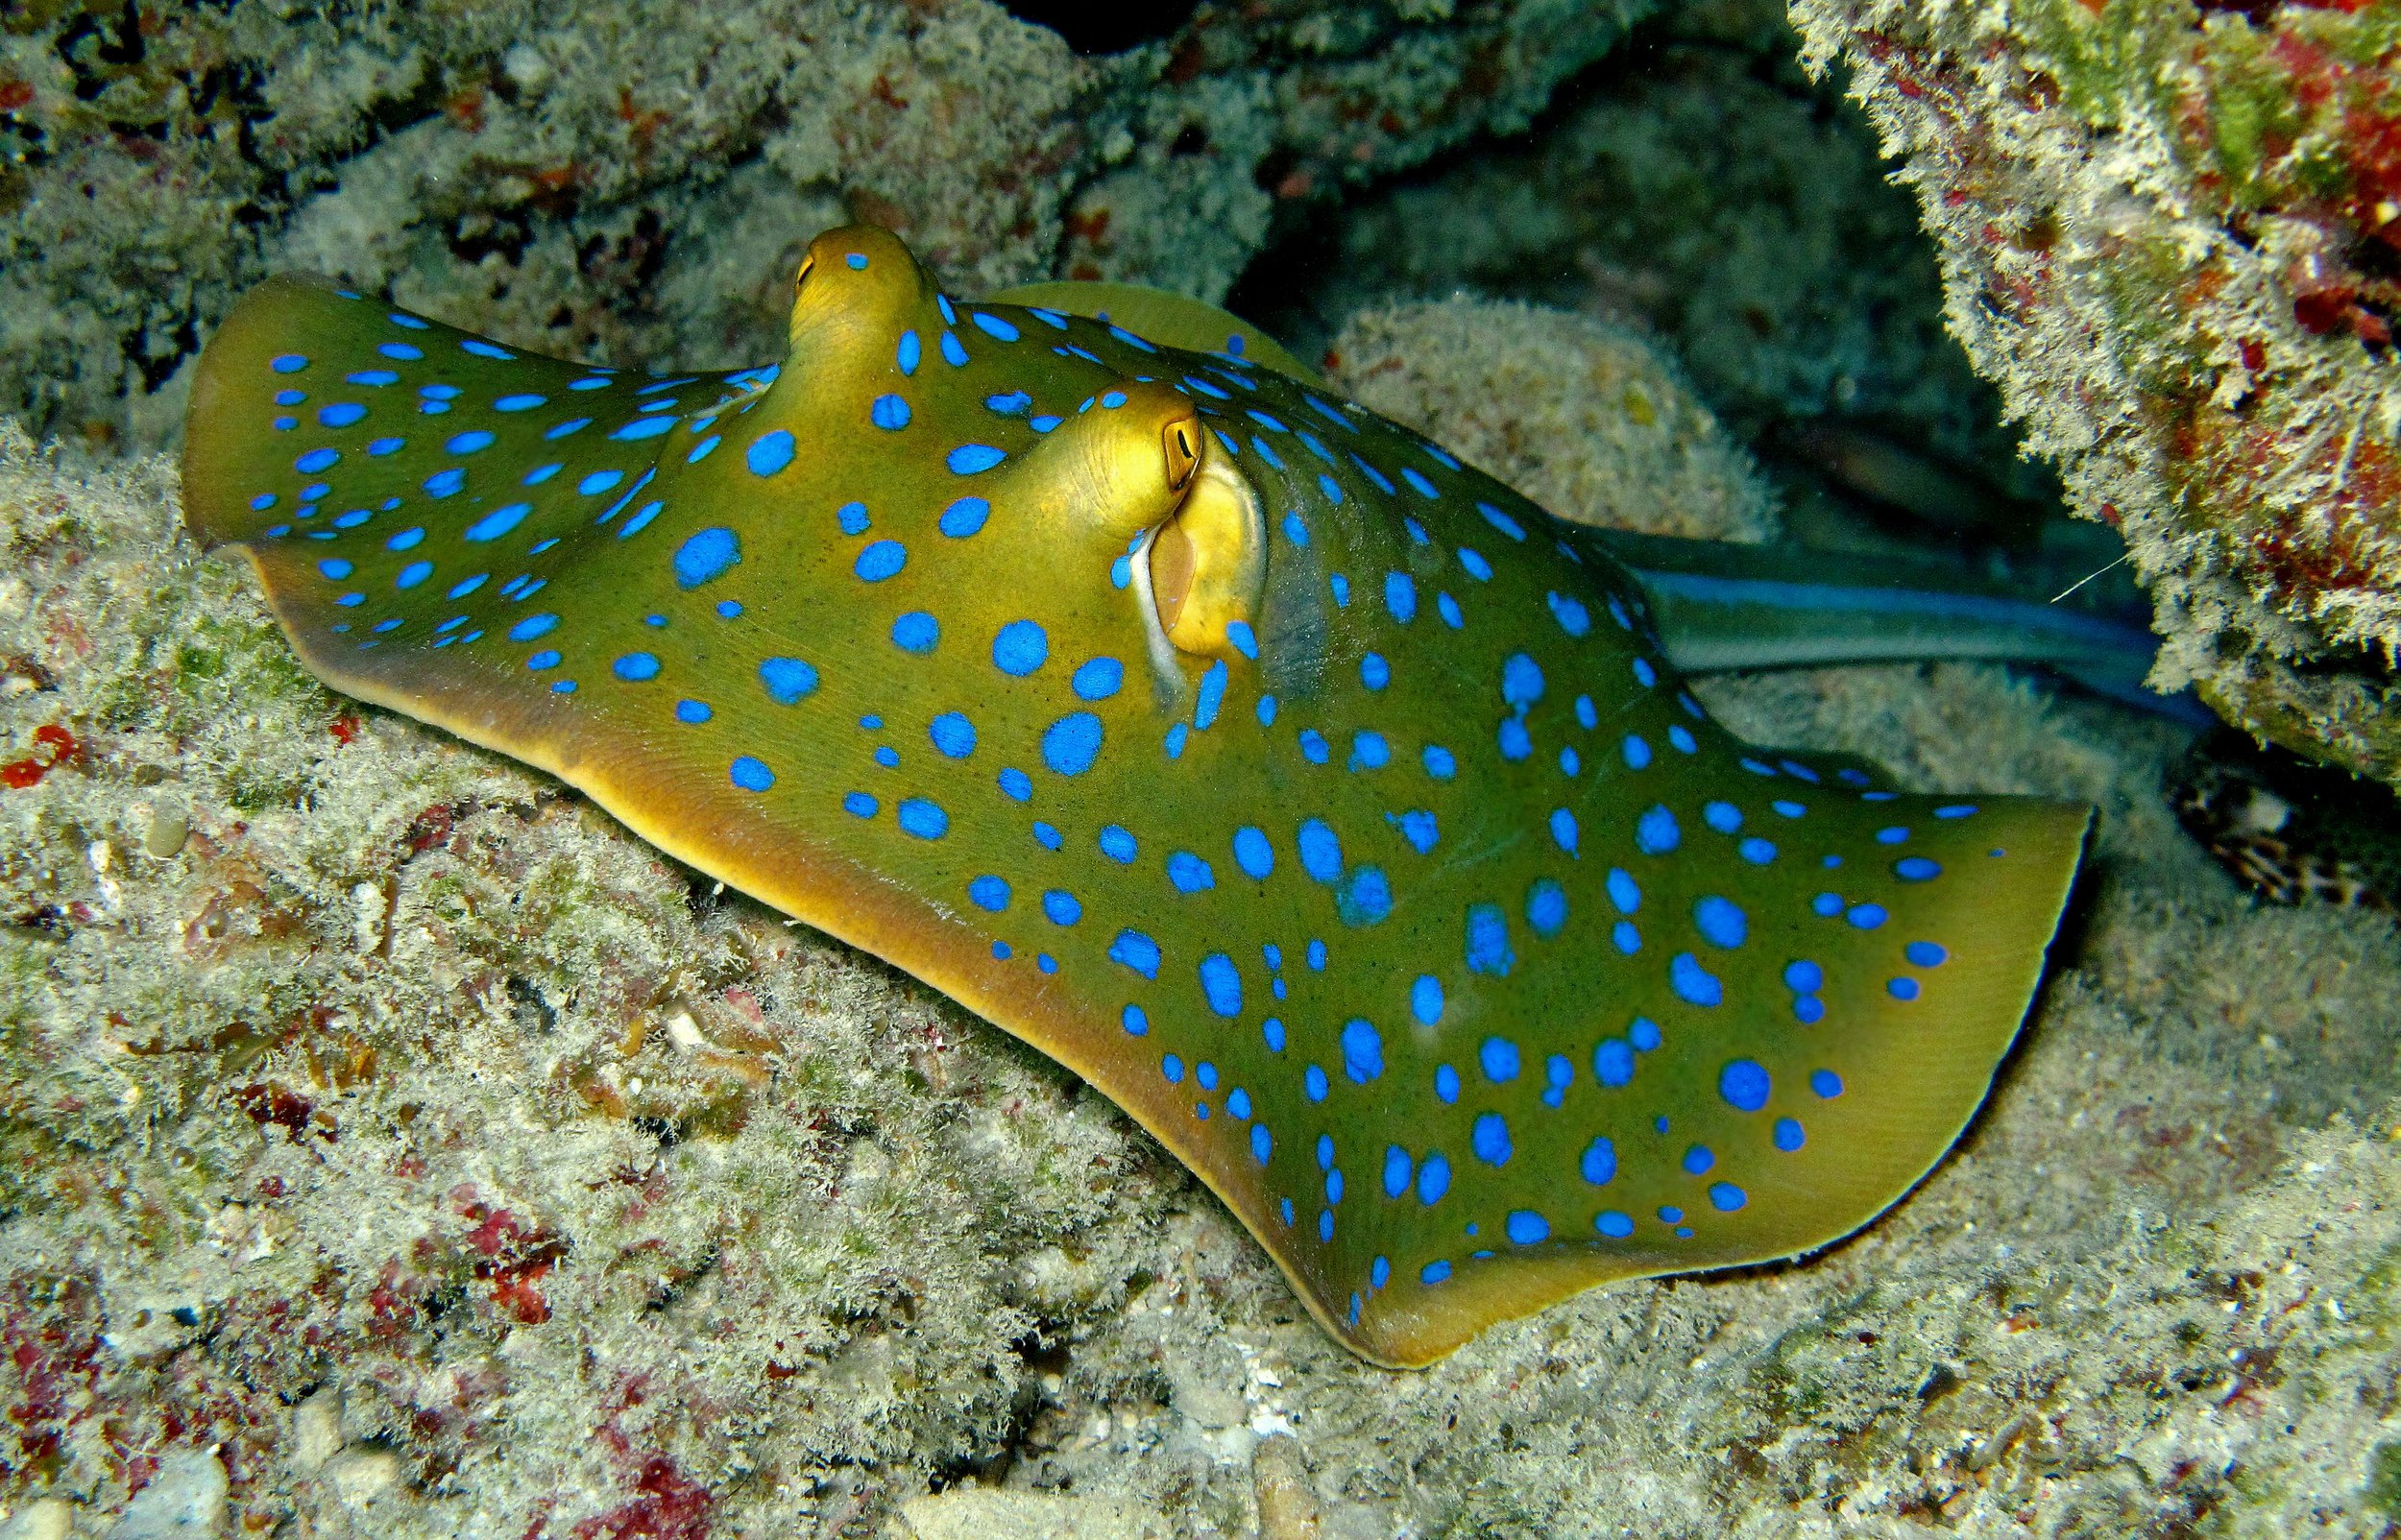 Blue-Spotted Ribbontail Stingray